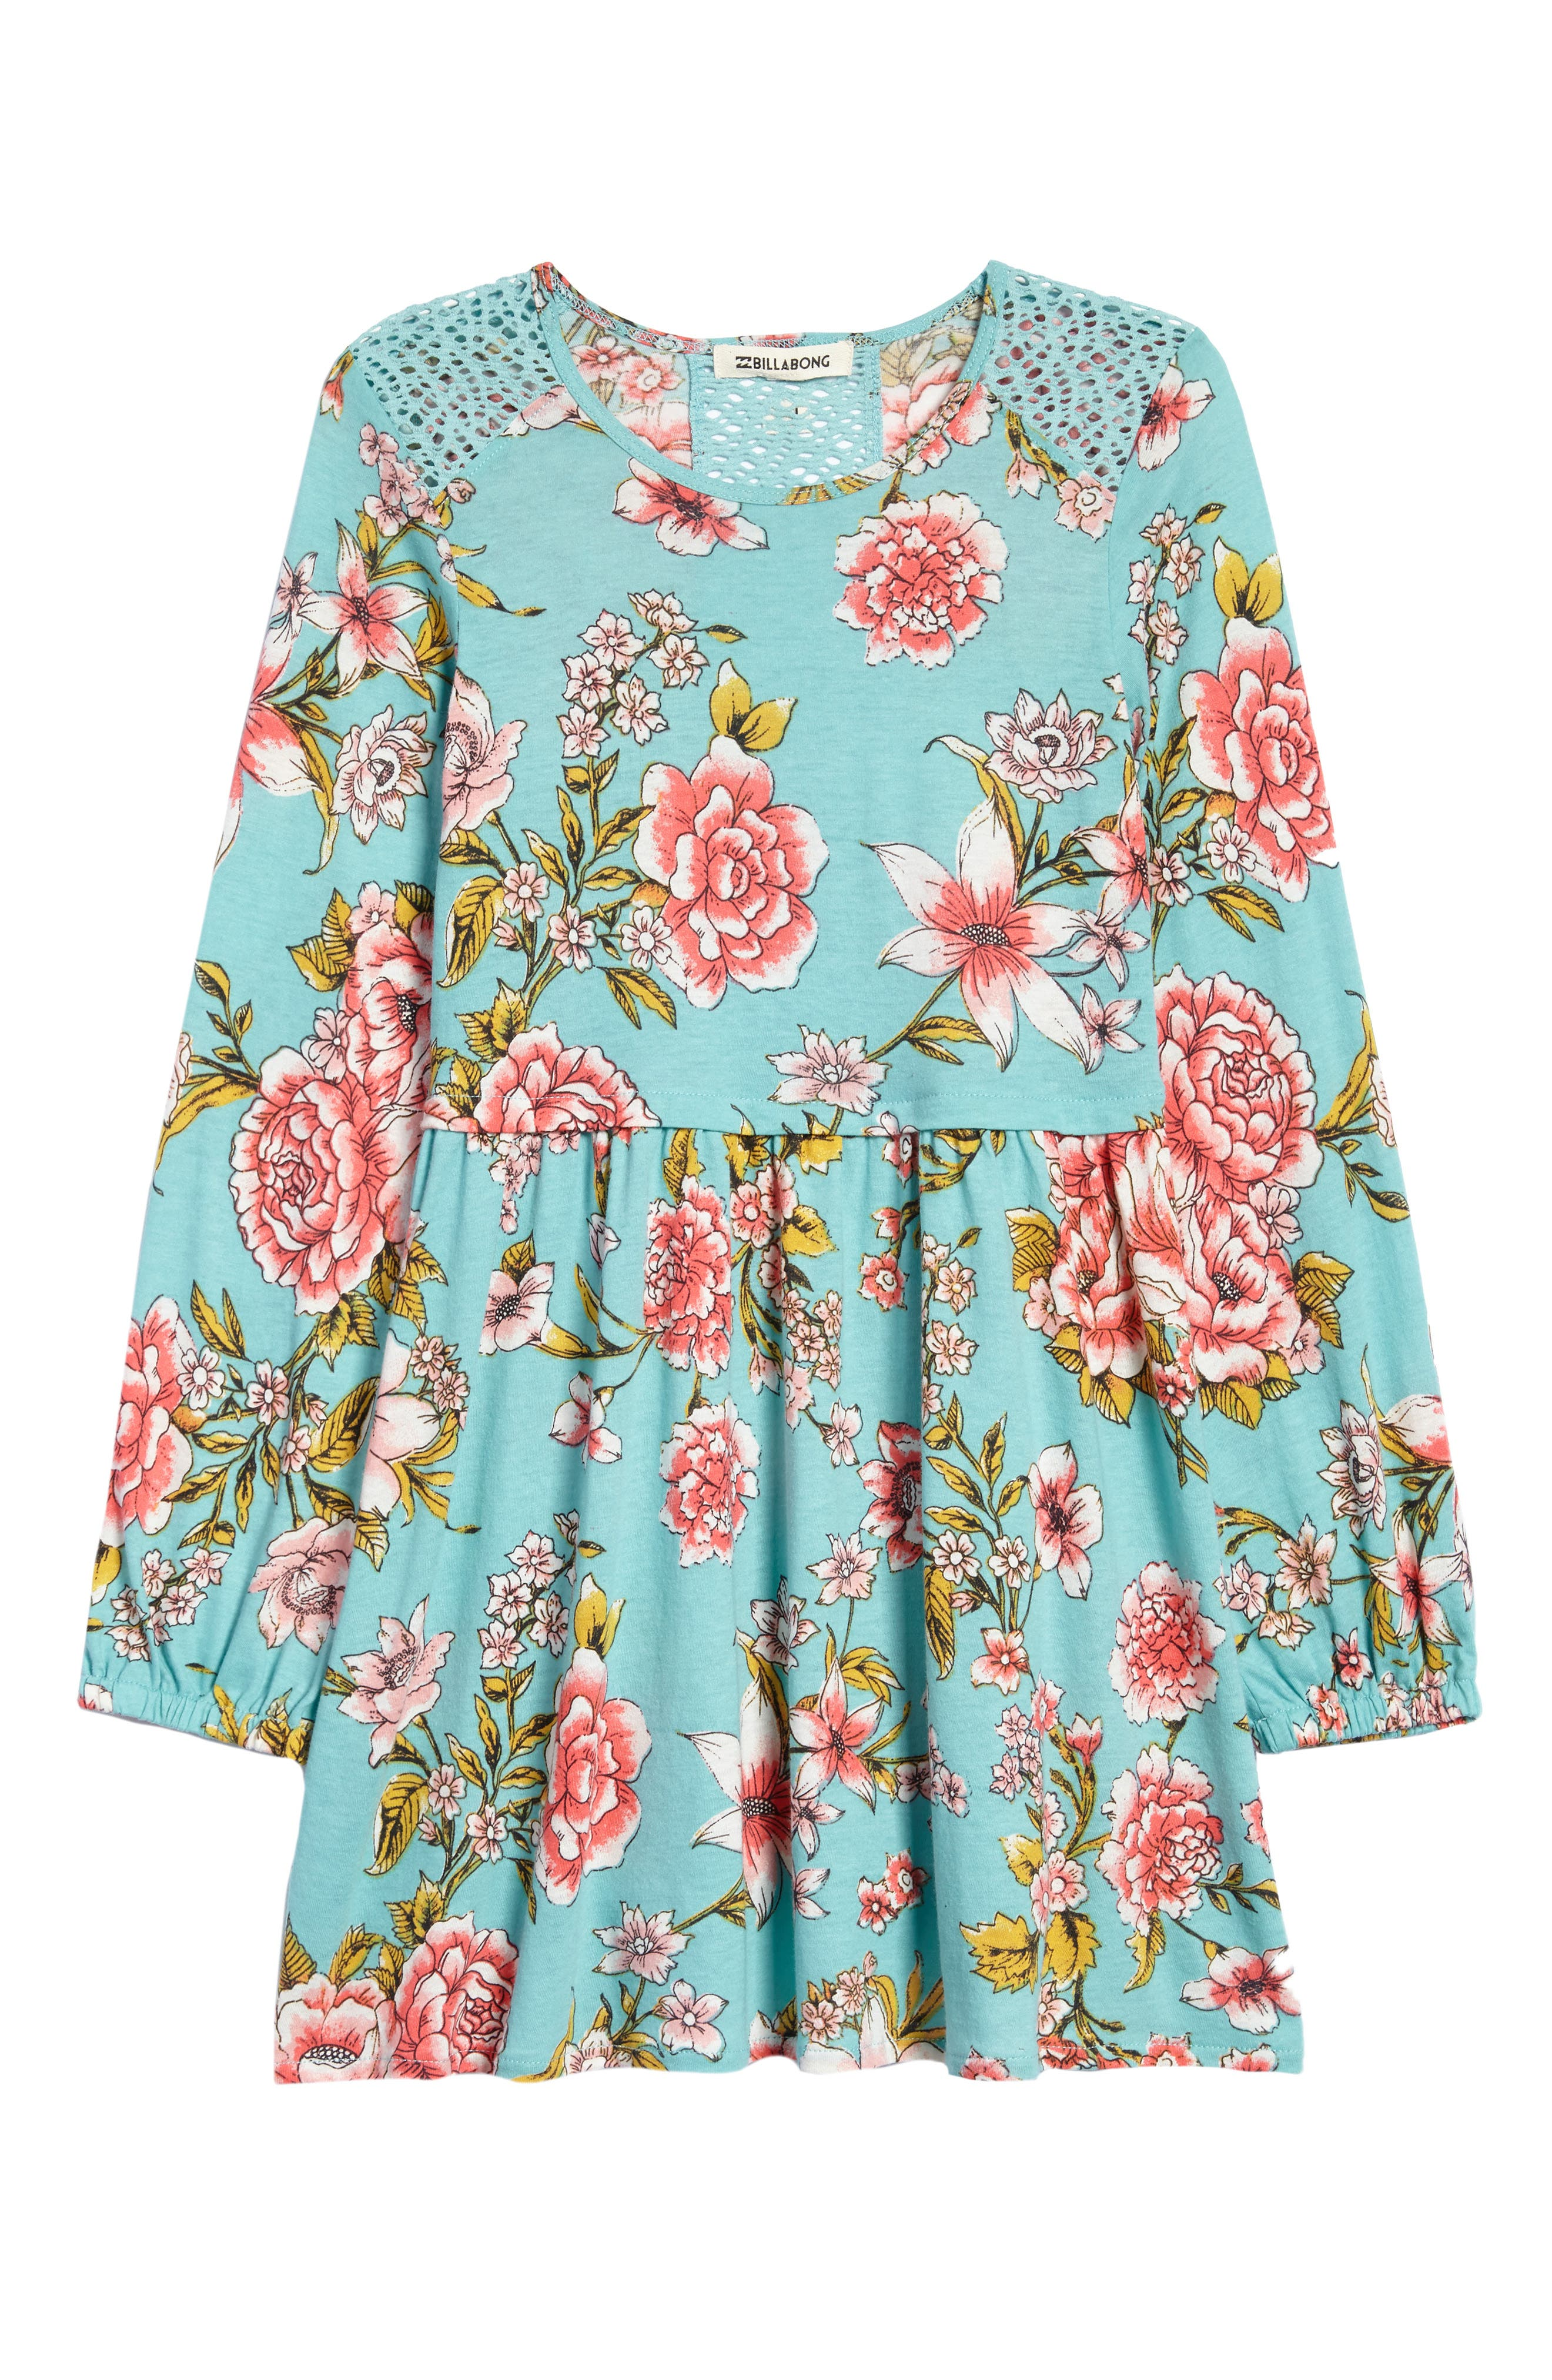 Me Oh My Dress,                         Main,                         color, Turquoise